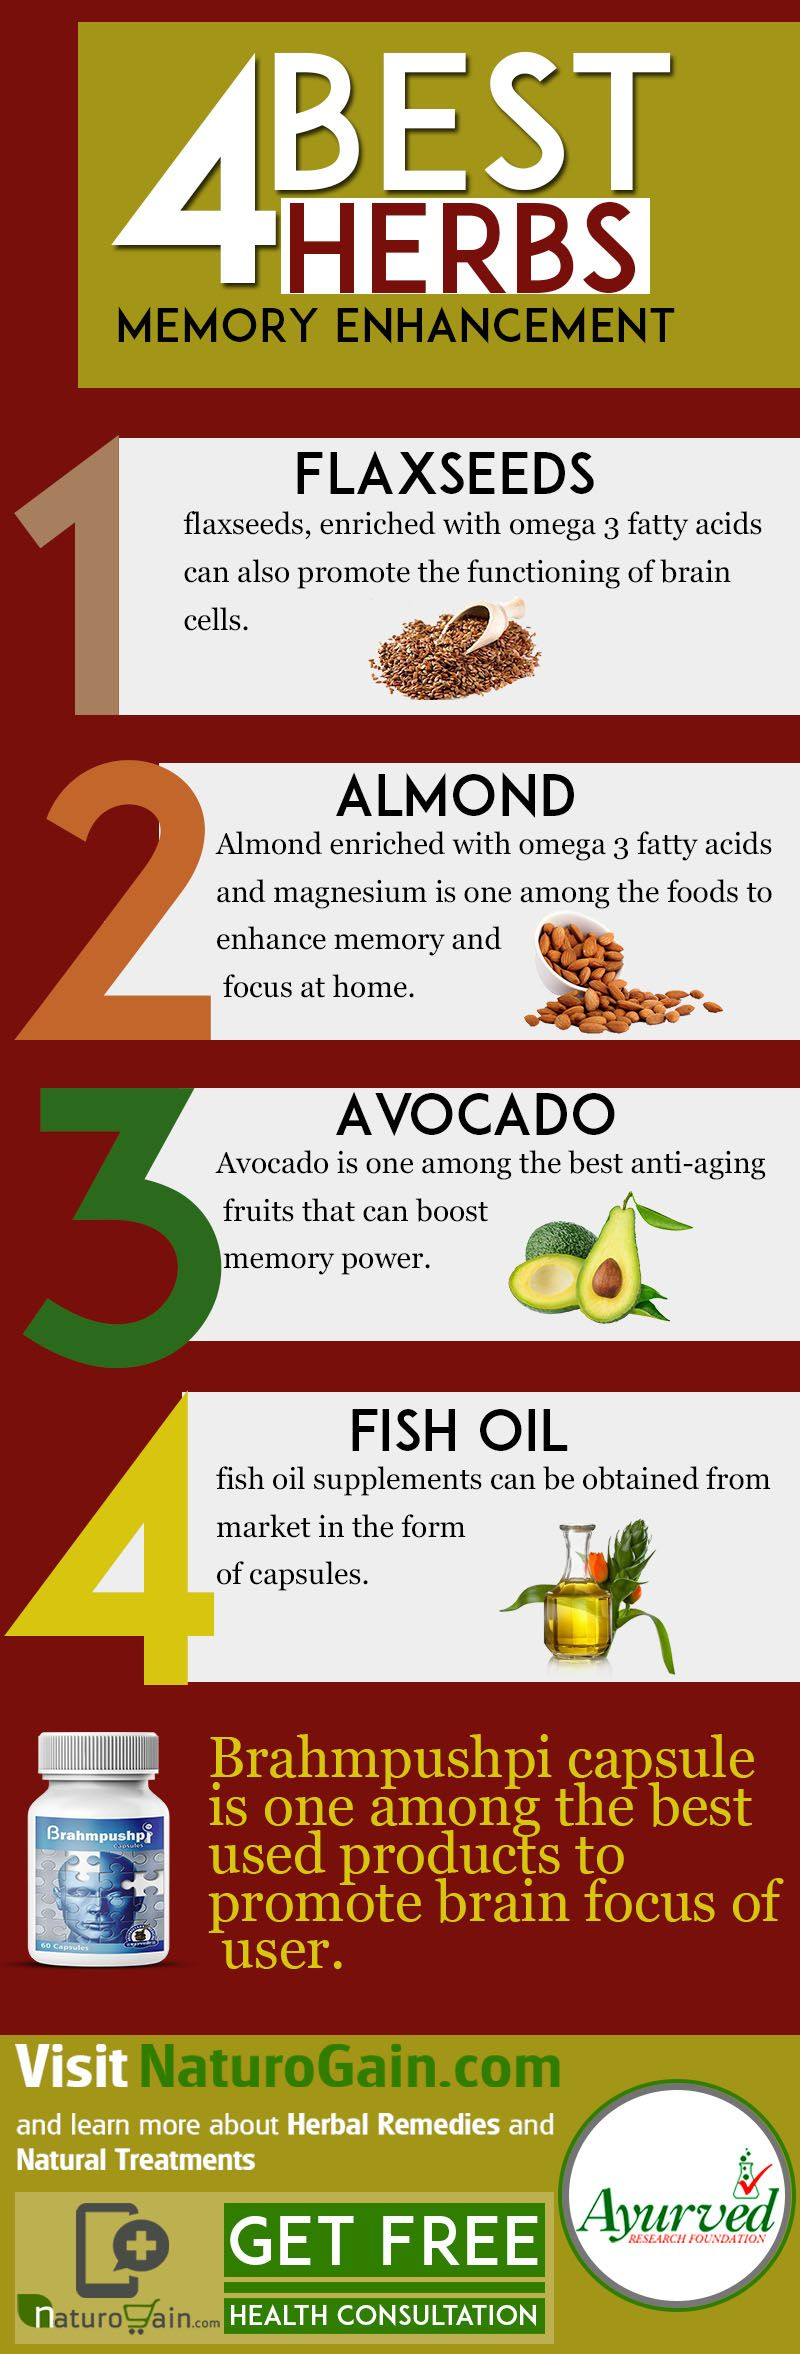 7 Best Memory Enhancement Foods to Increase Focus FAST Dear